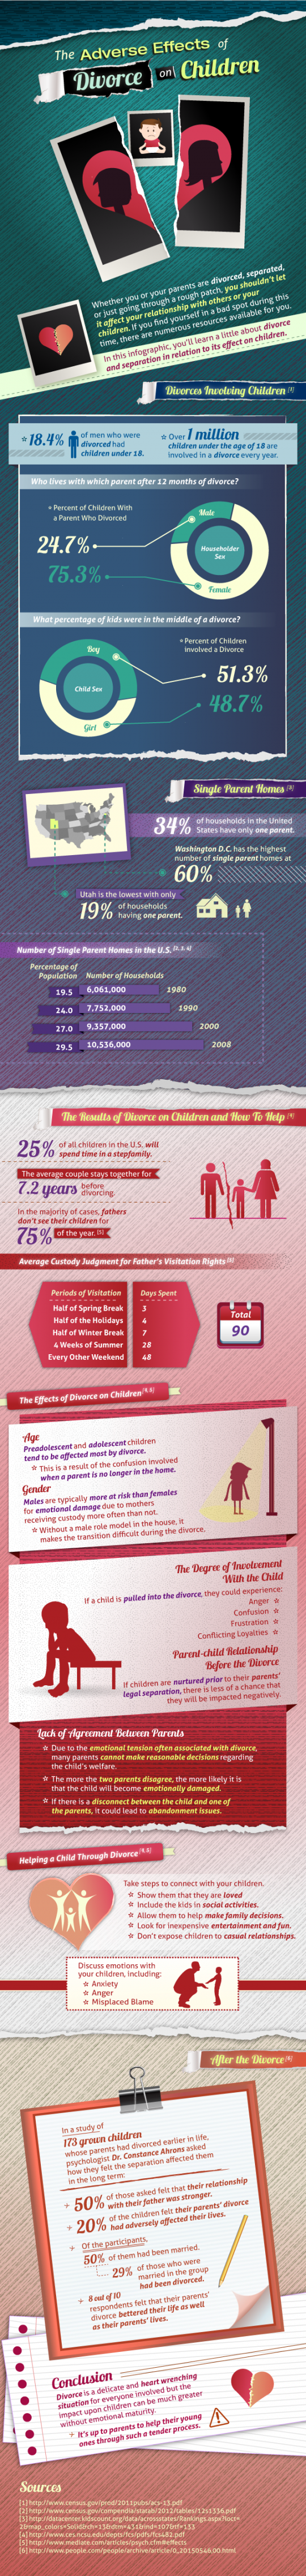 Adverse Effects of Divorce on Children